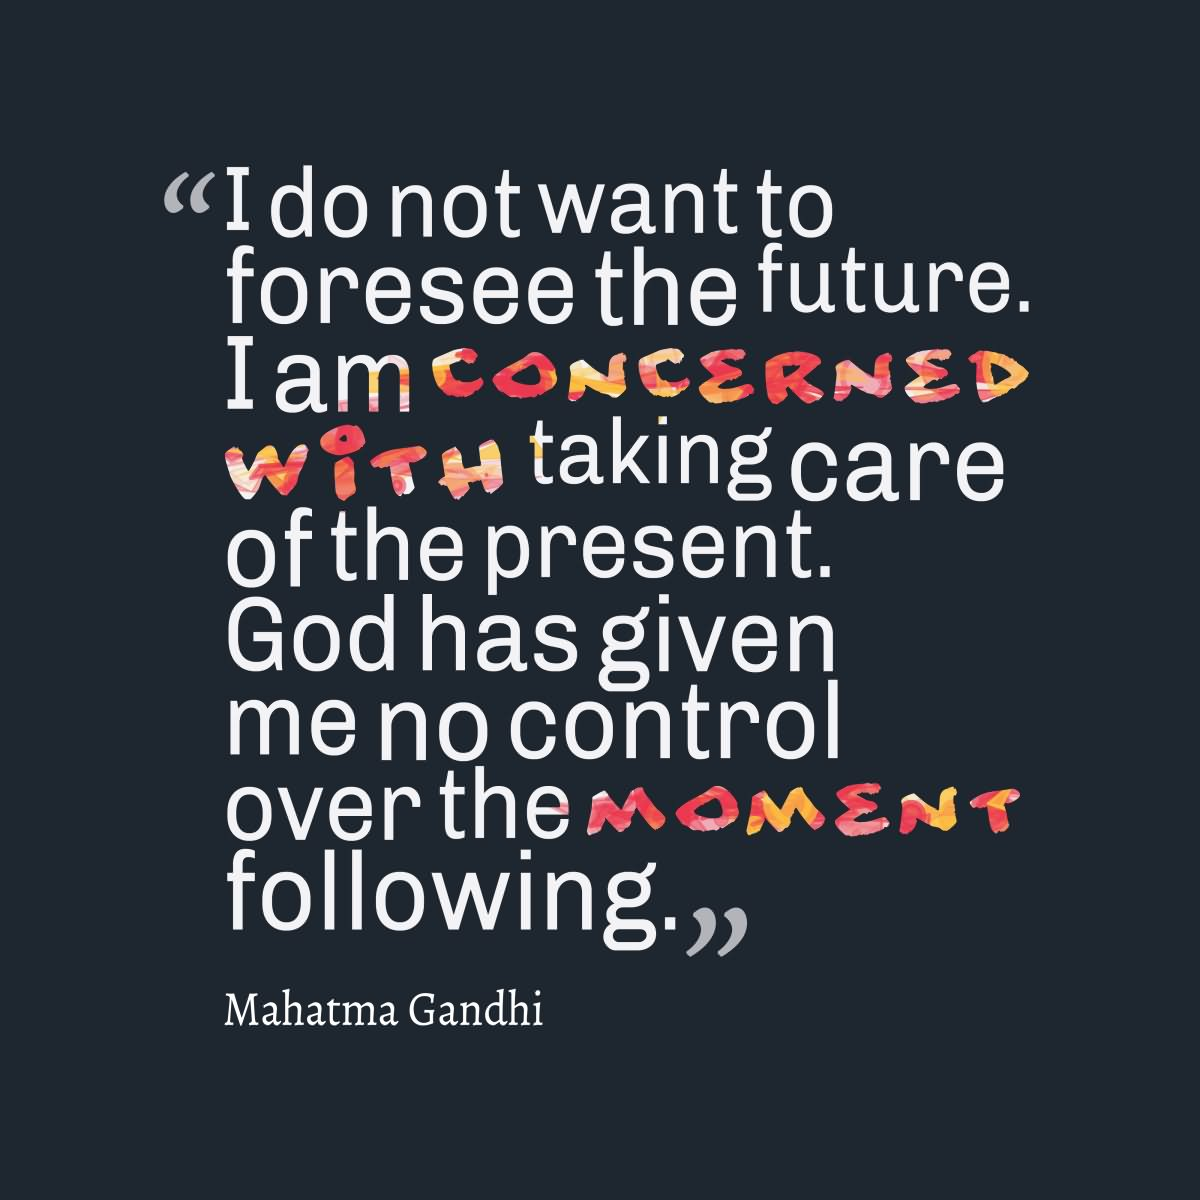 I do not want to foresee the future. I am concerned with taking care of the present. God has given me no control over the moment following.